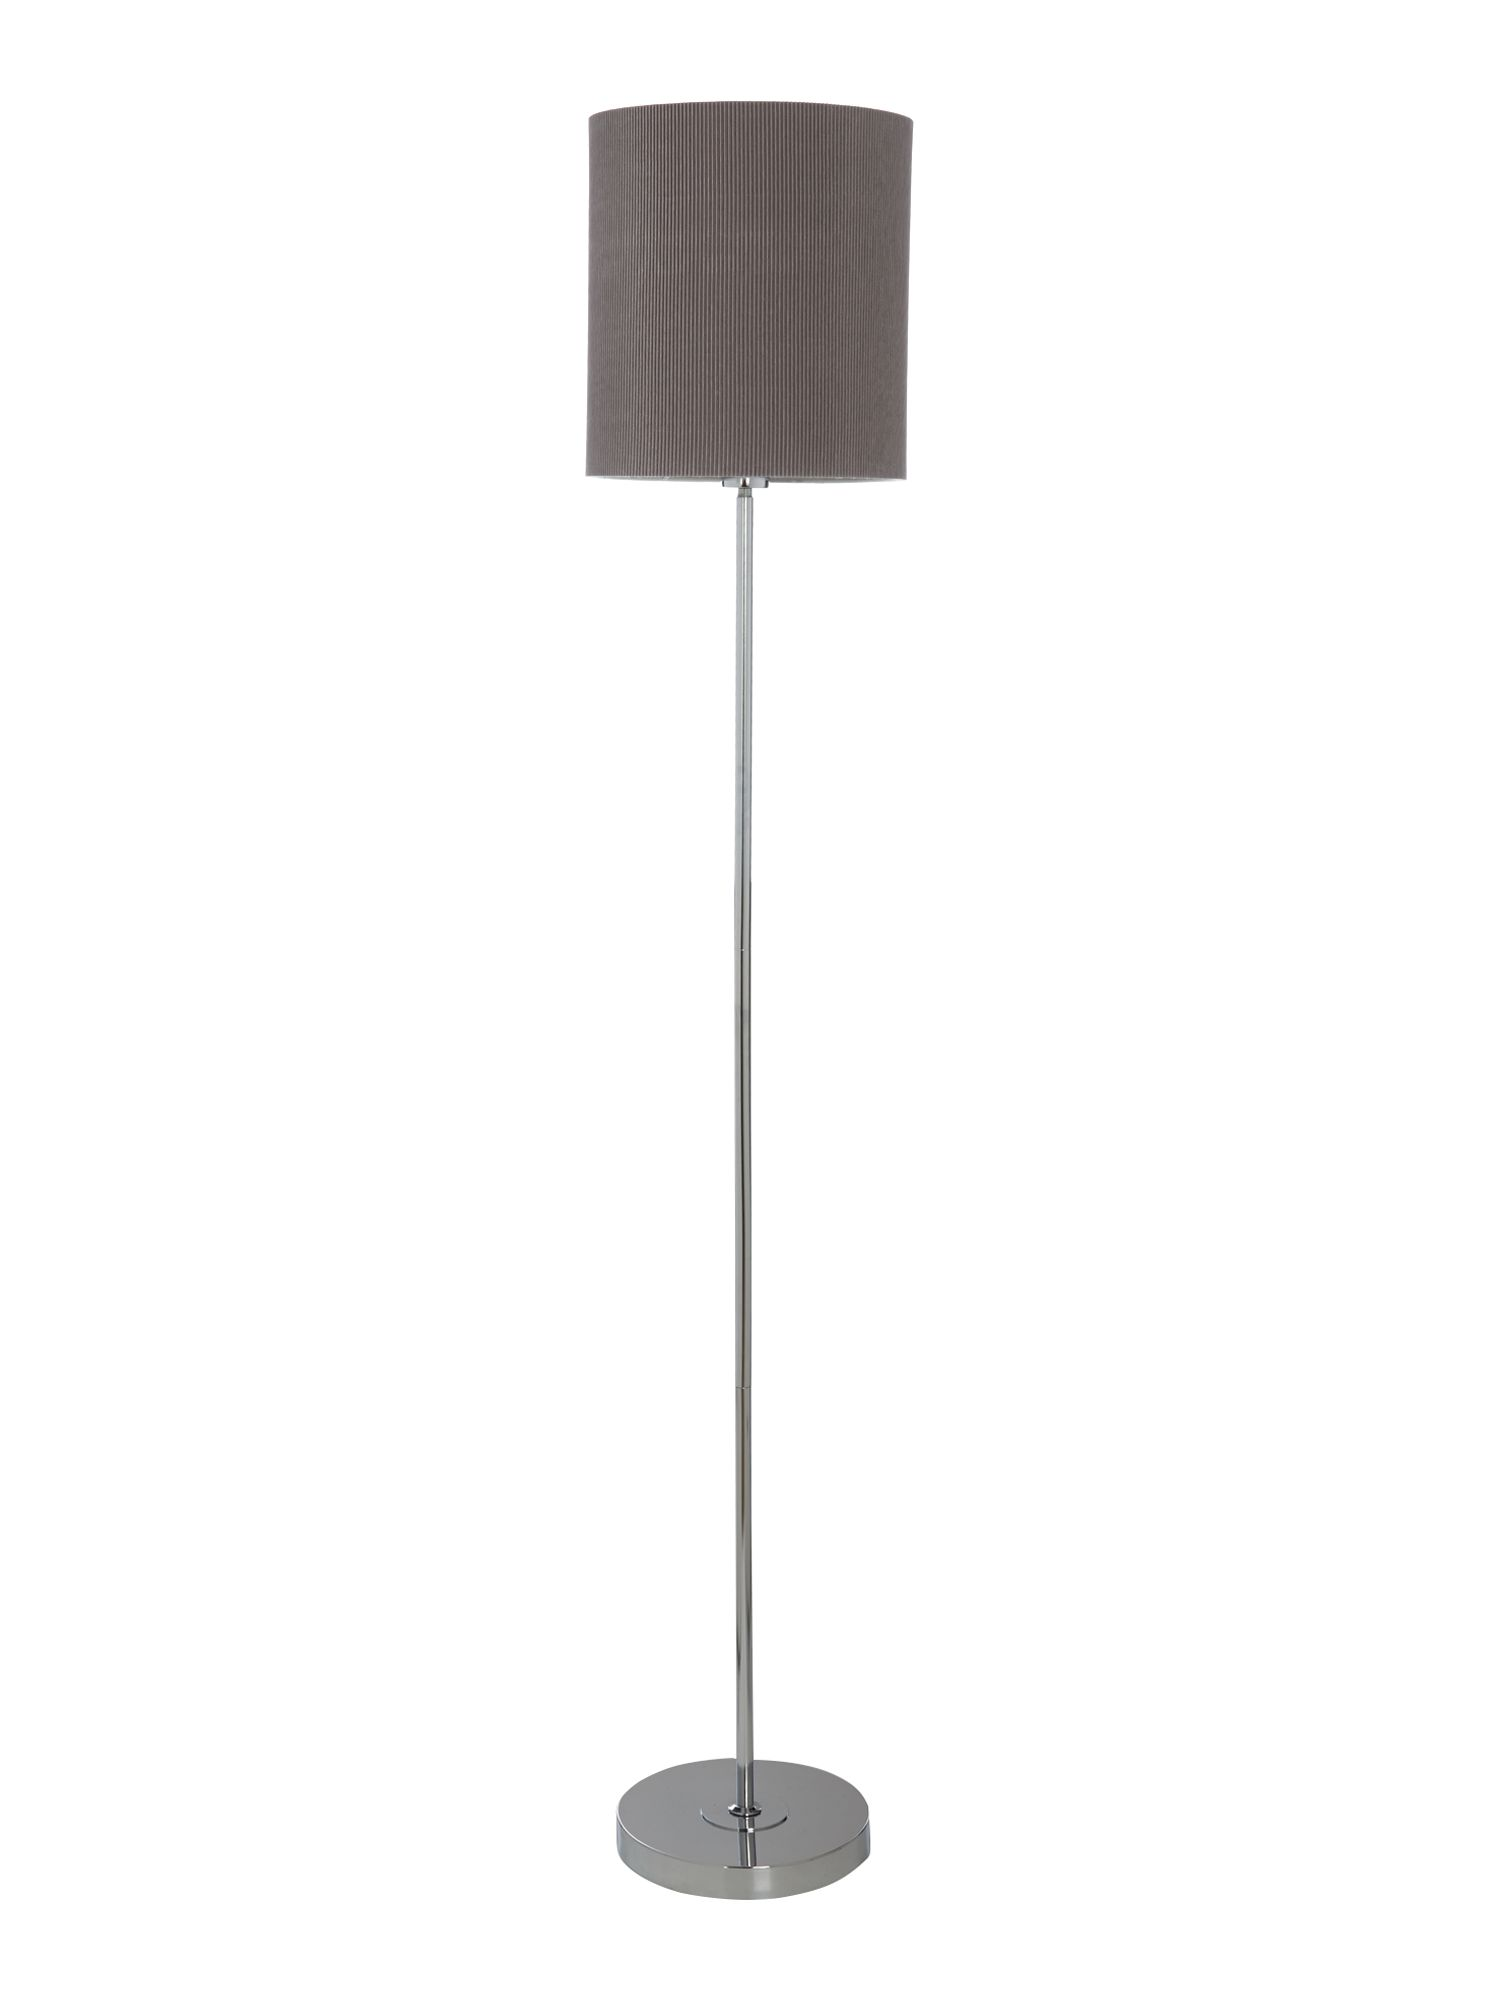 Blaine grey floor lamp